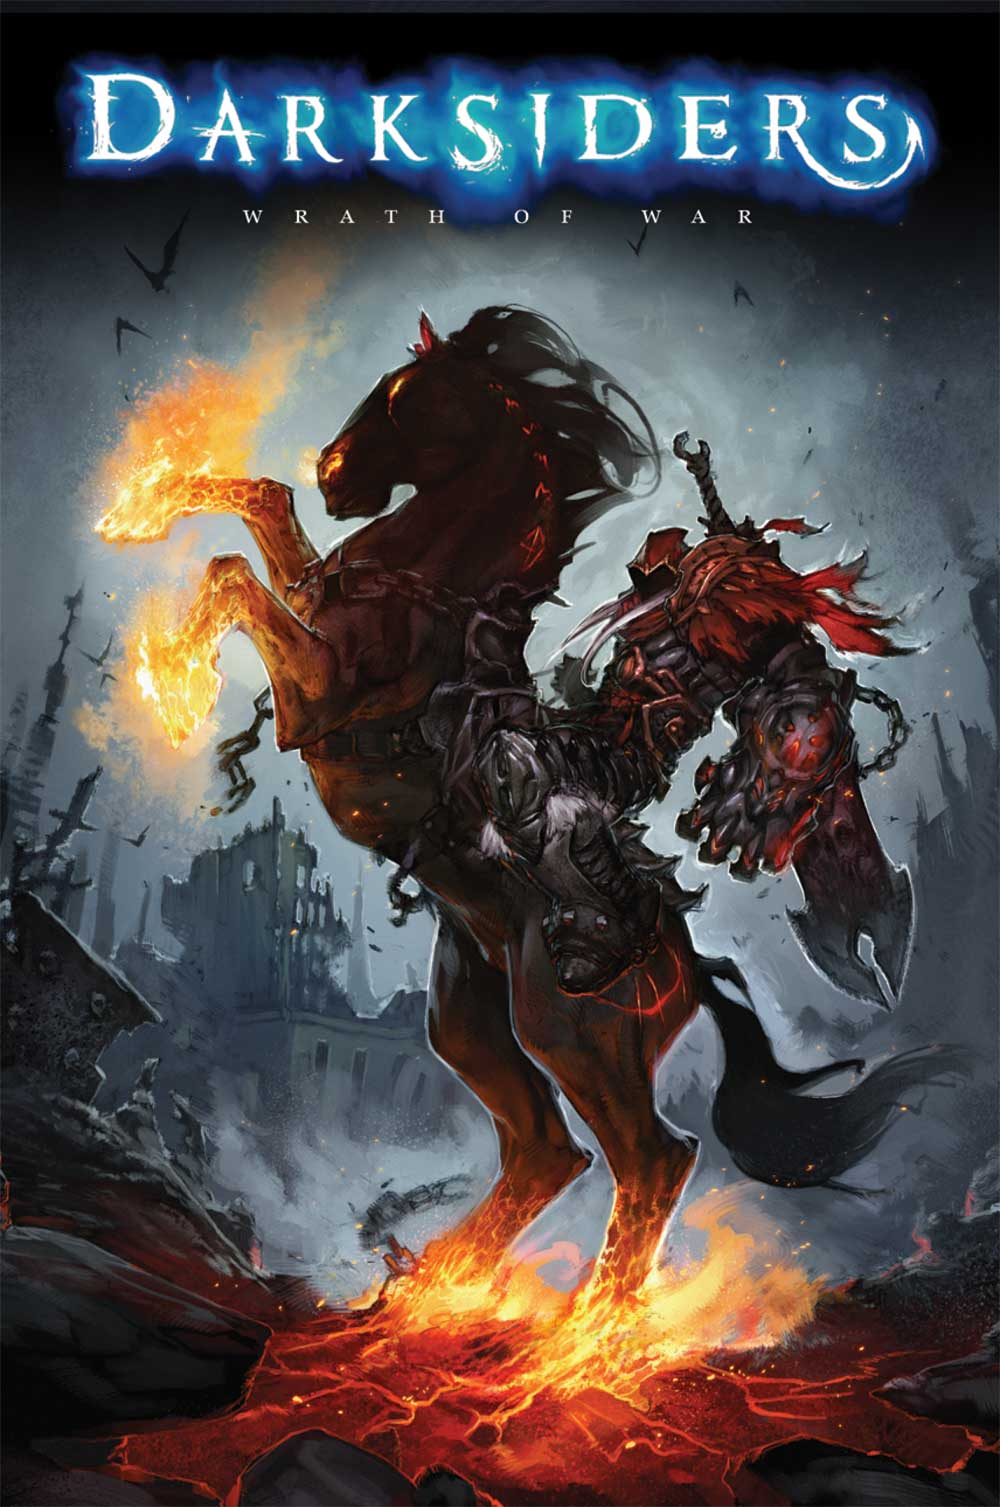 Darksiders 1 Download PC Game - Fully Full Version Games ...